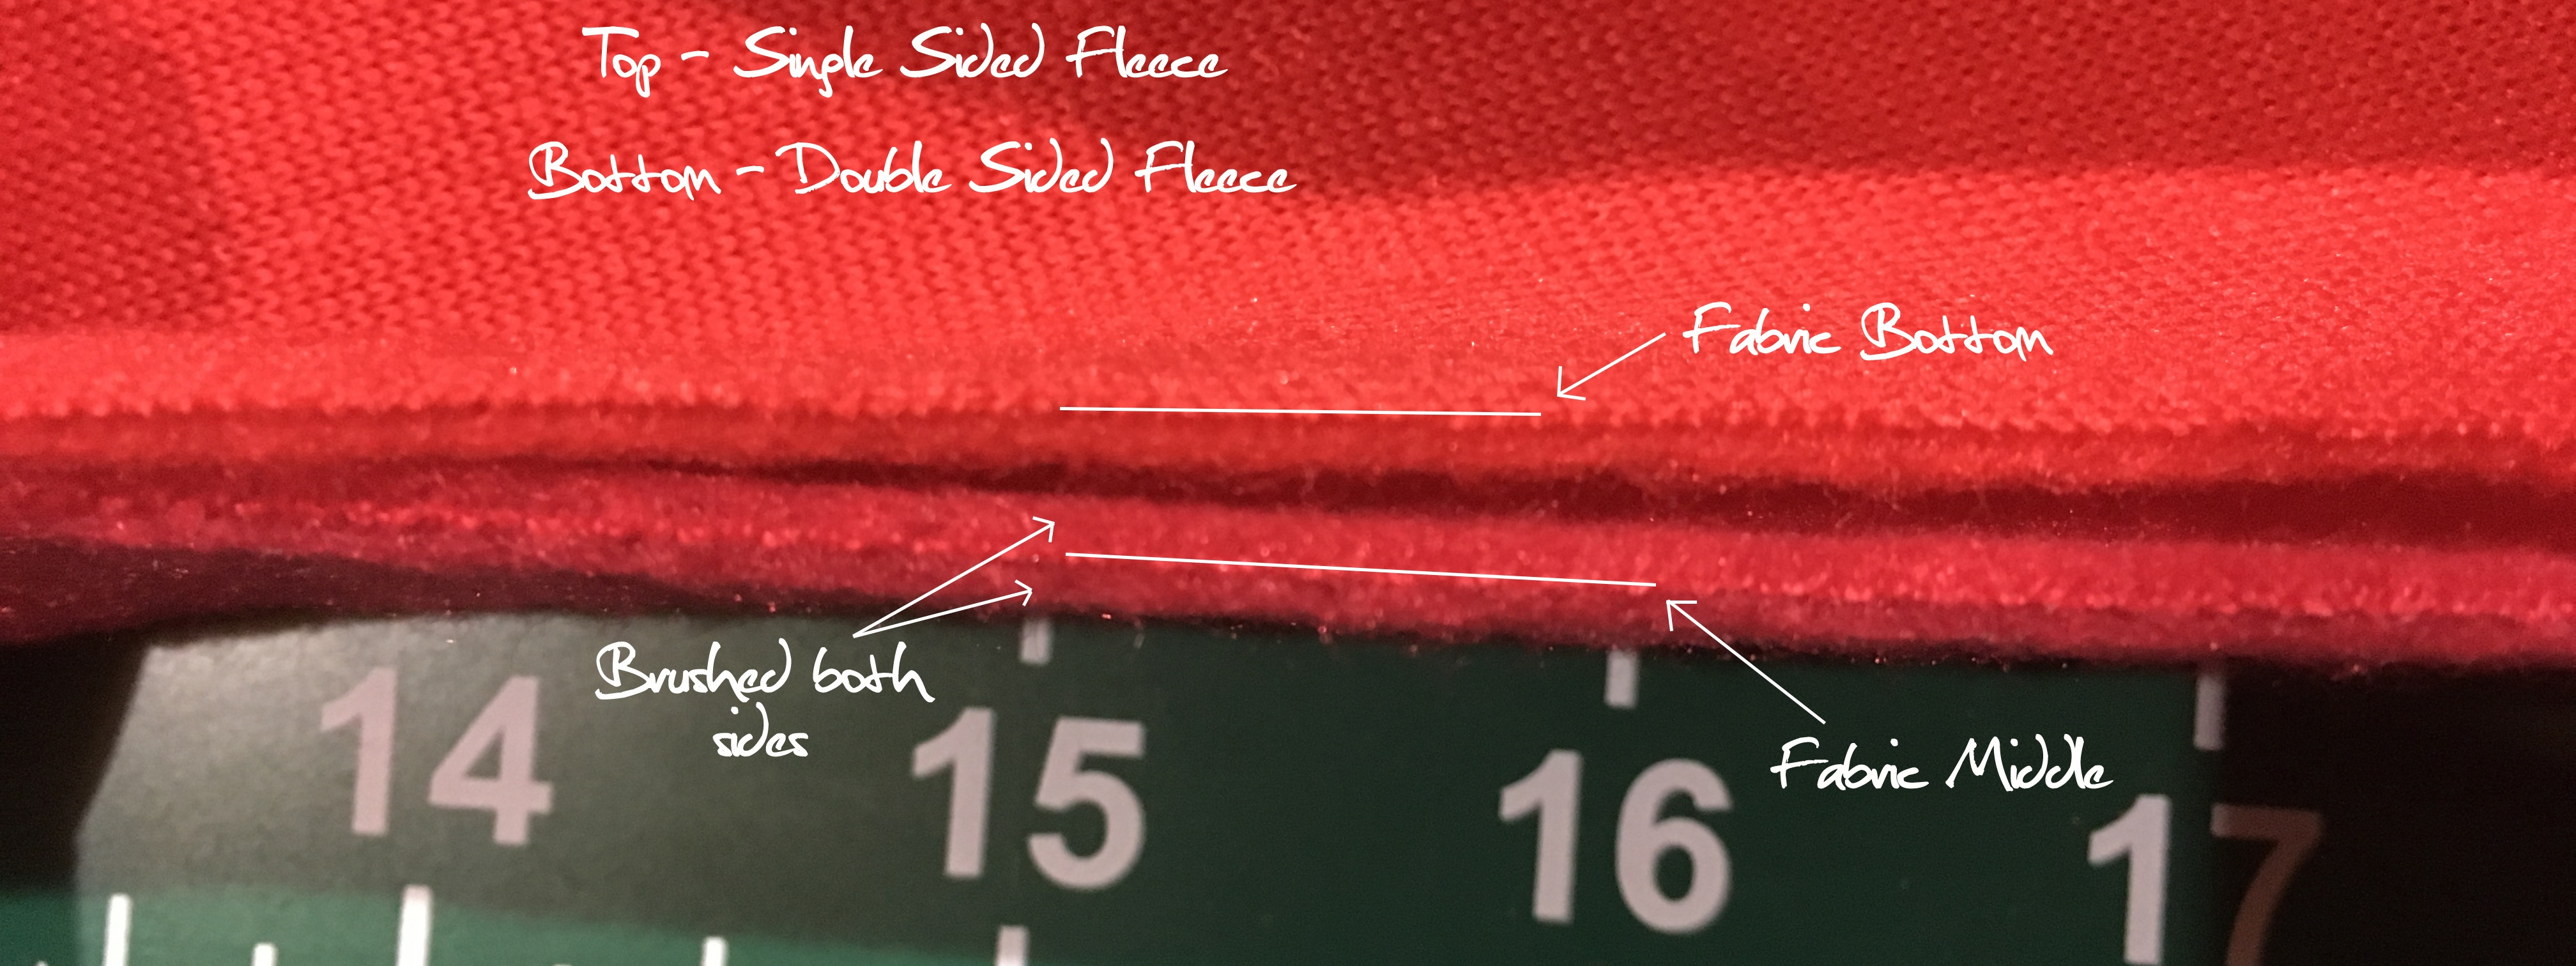 Double sided fleece vs Single sided fleece